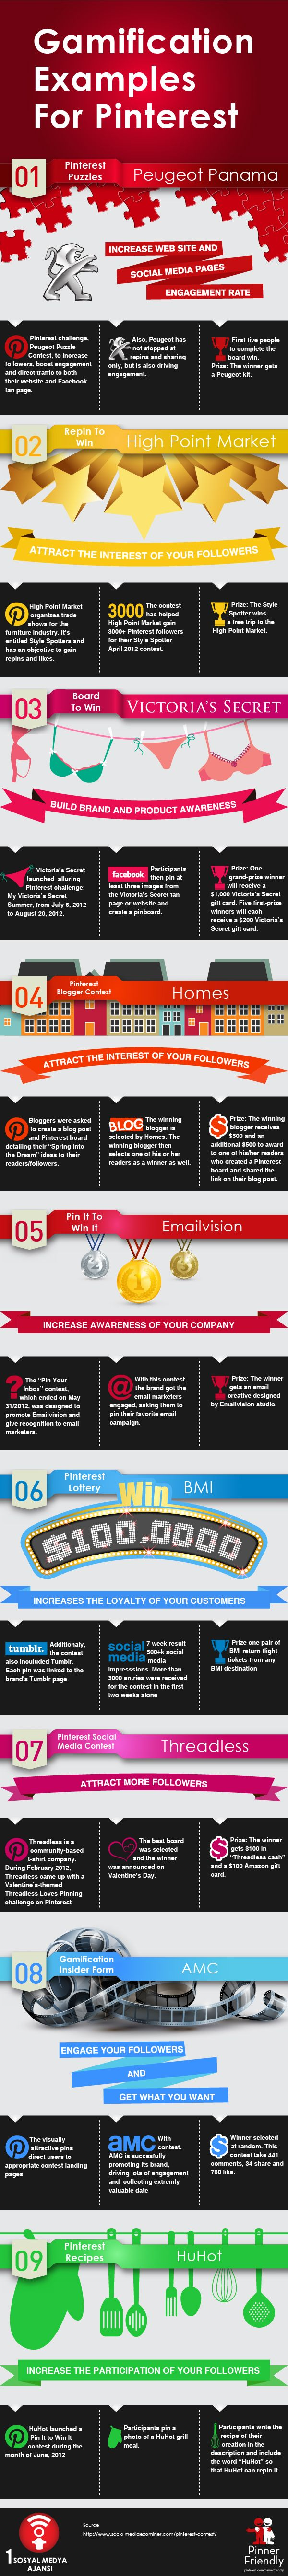 Gamification examples for Pinternet #infographic